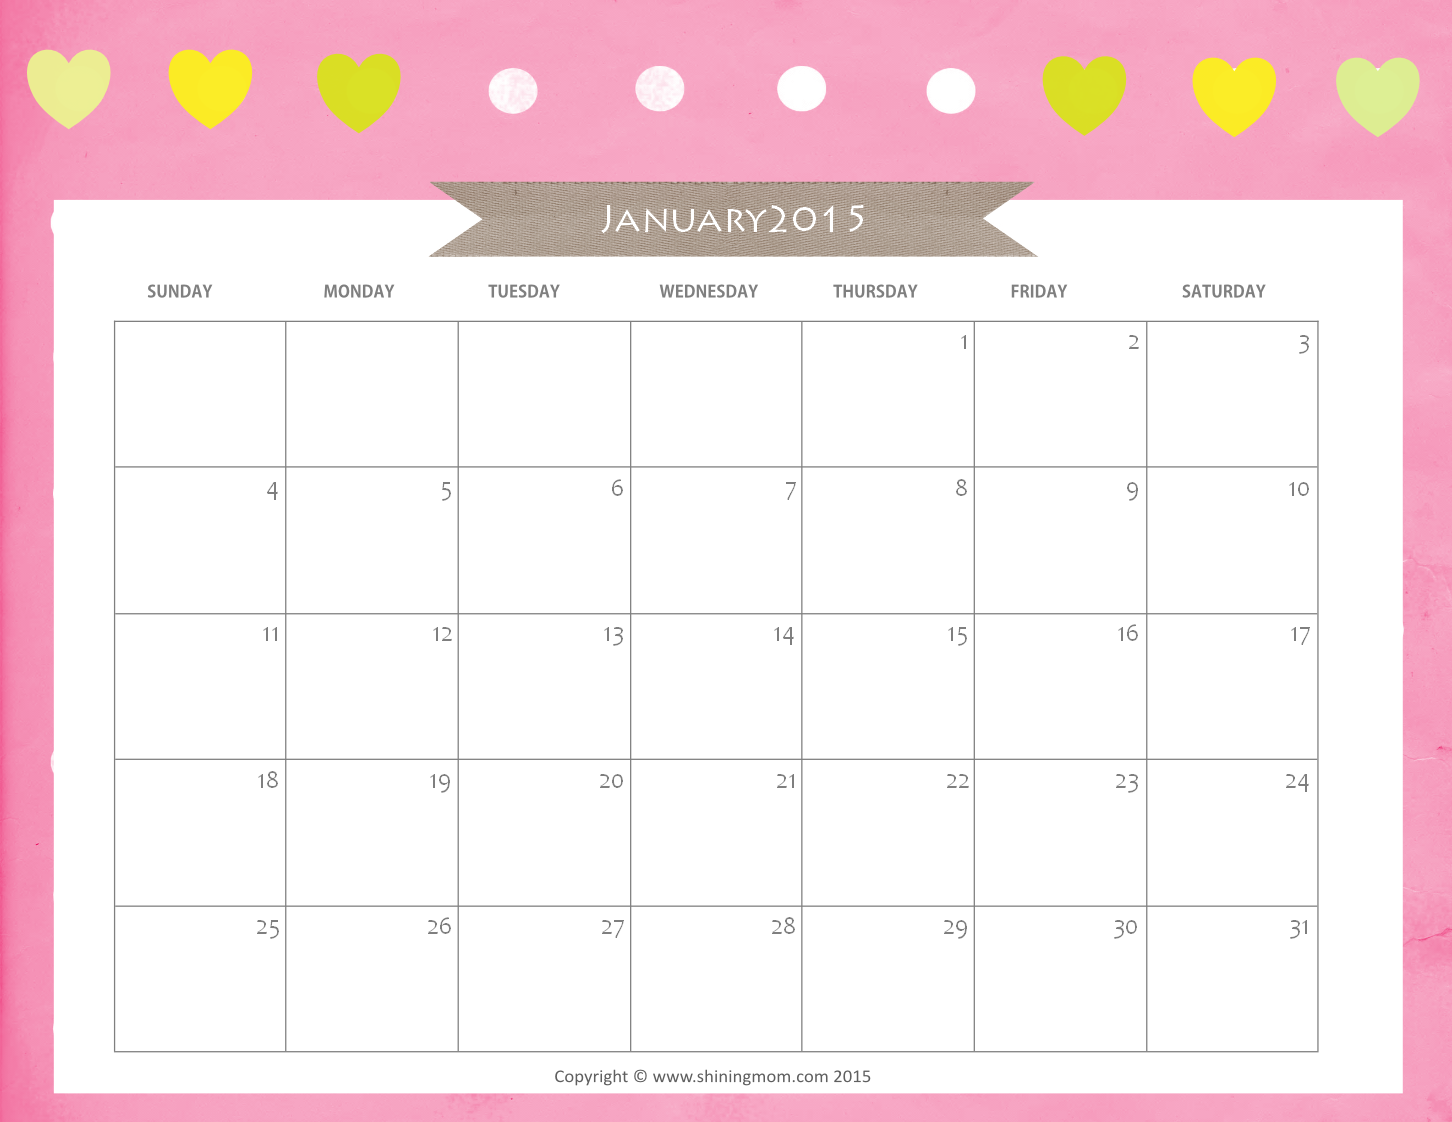 January 2015 Calendar in Refreshing Greens